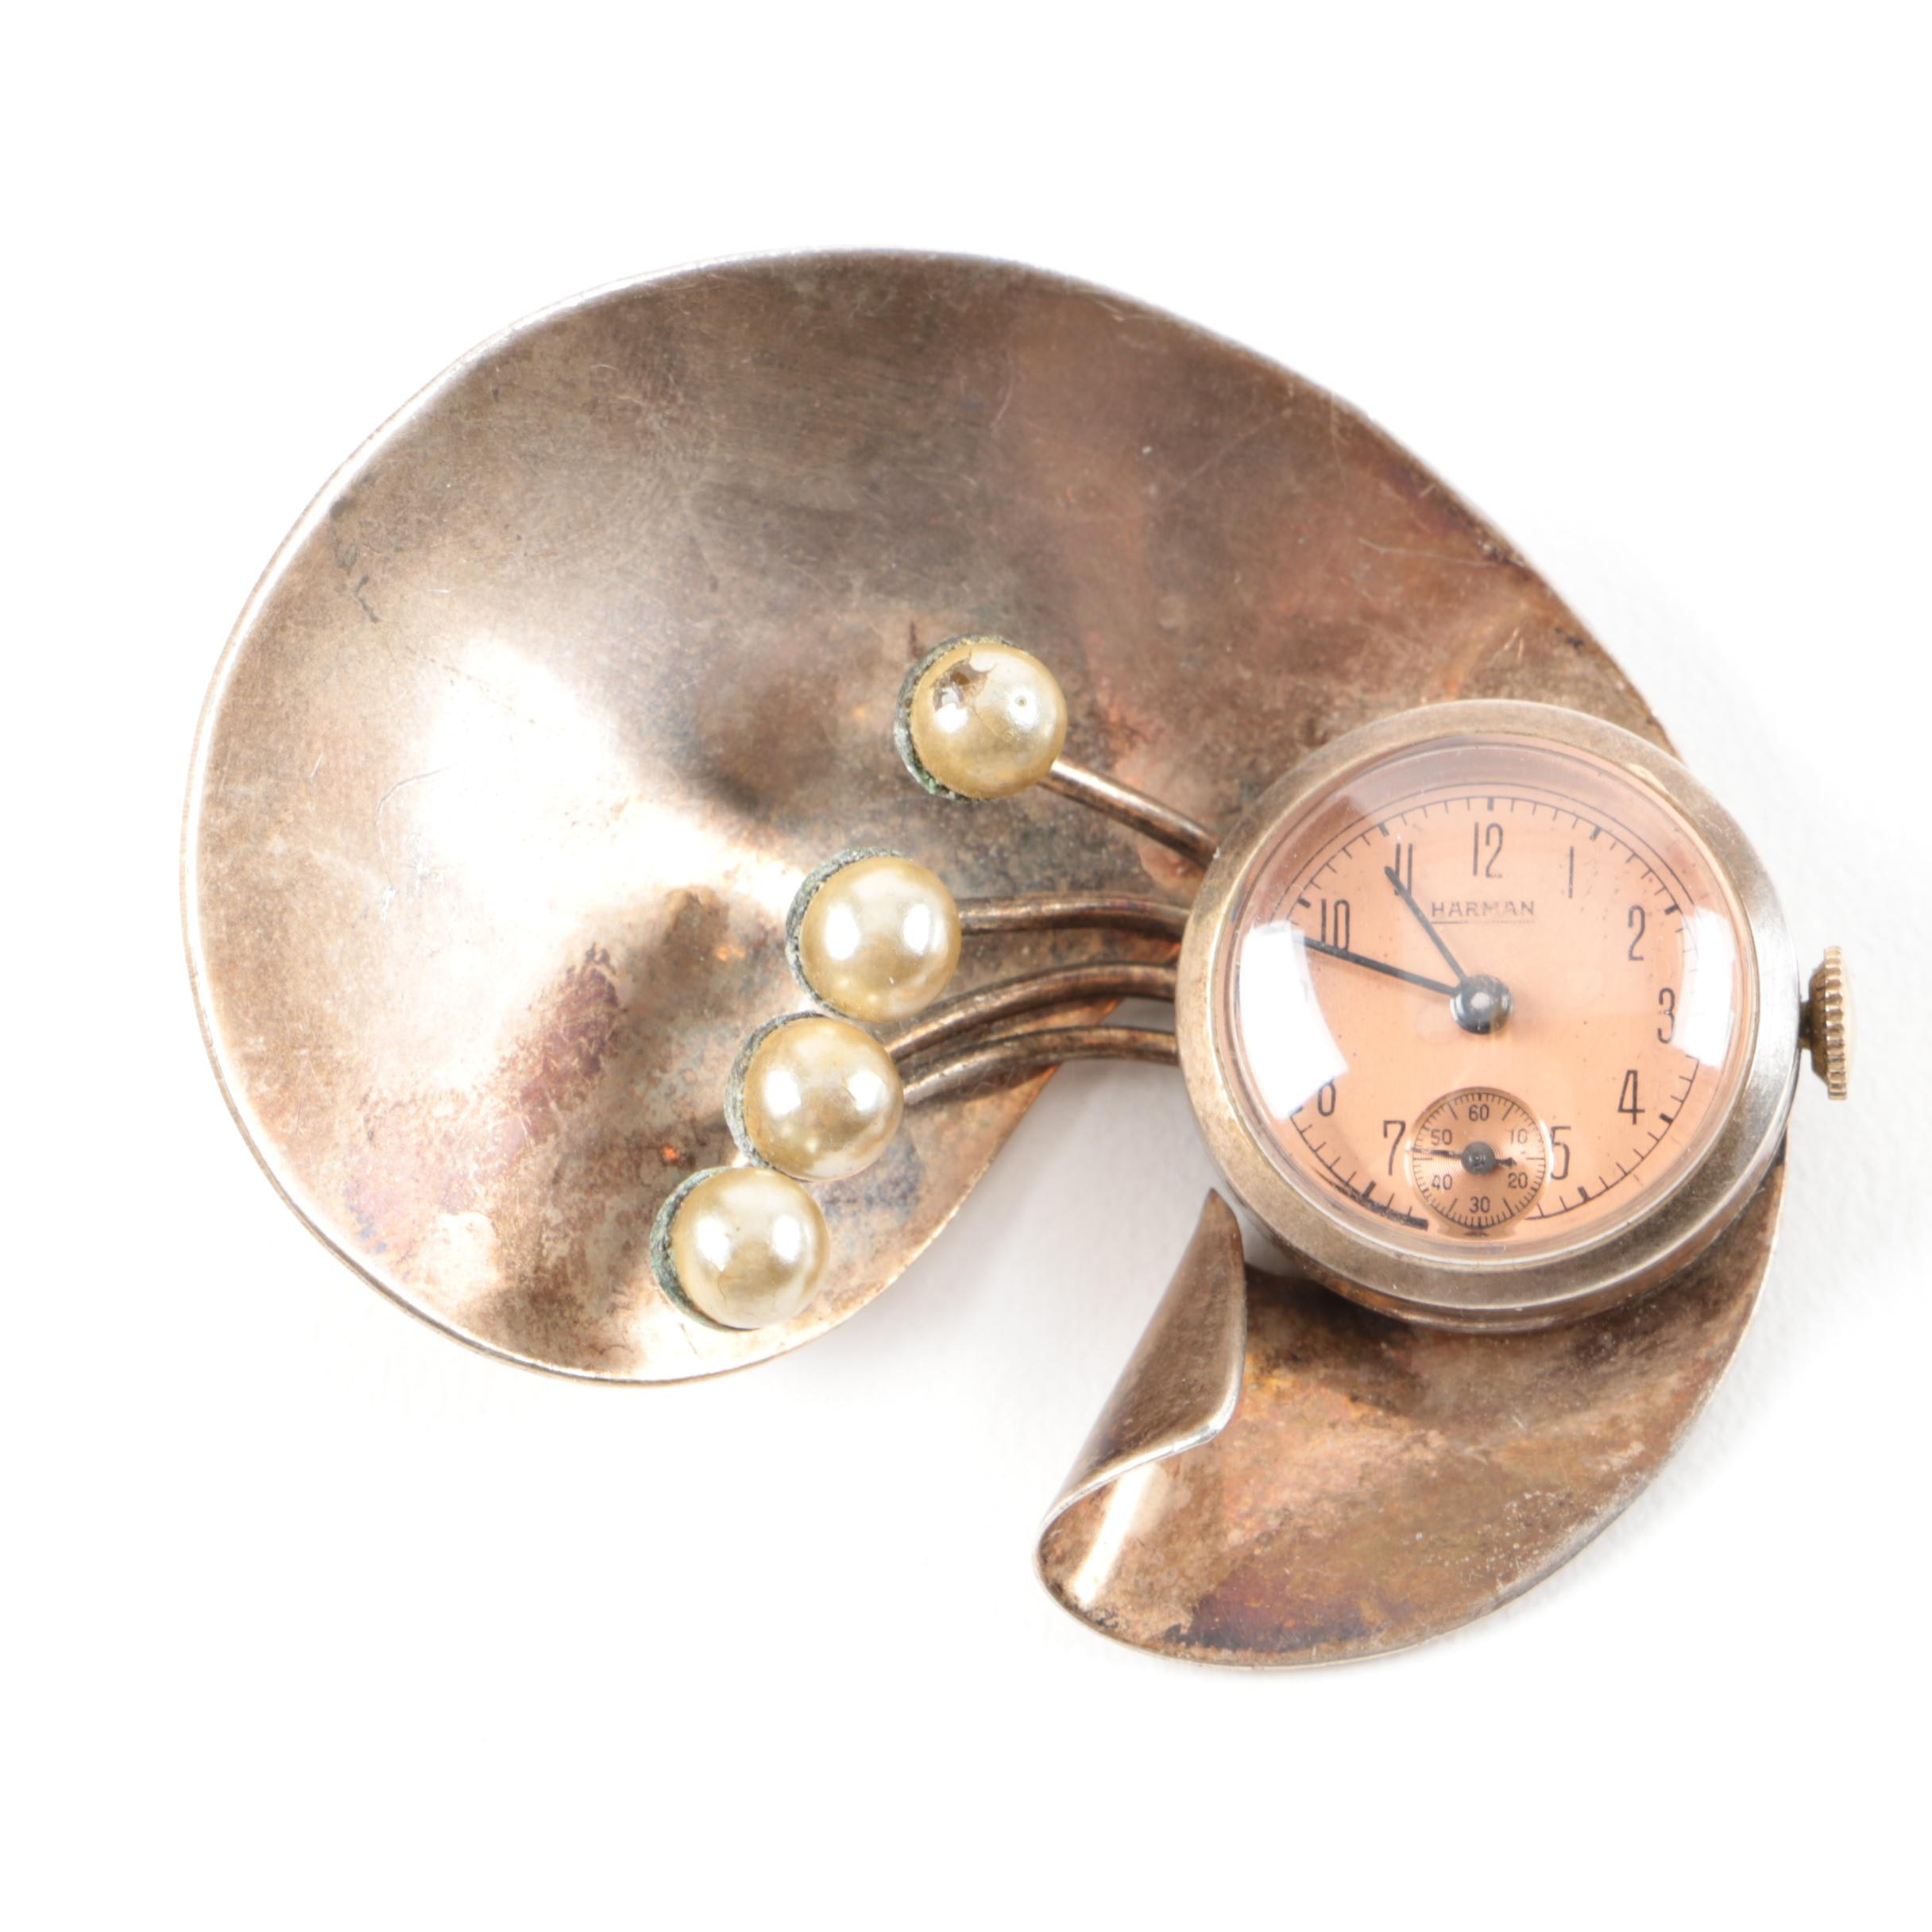 Vintage Sterling Silver Wind-Up Watch Brooch